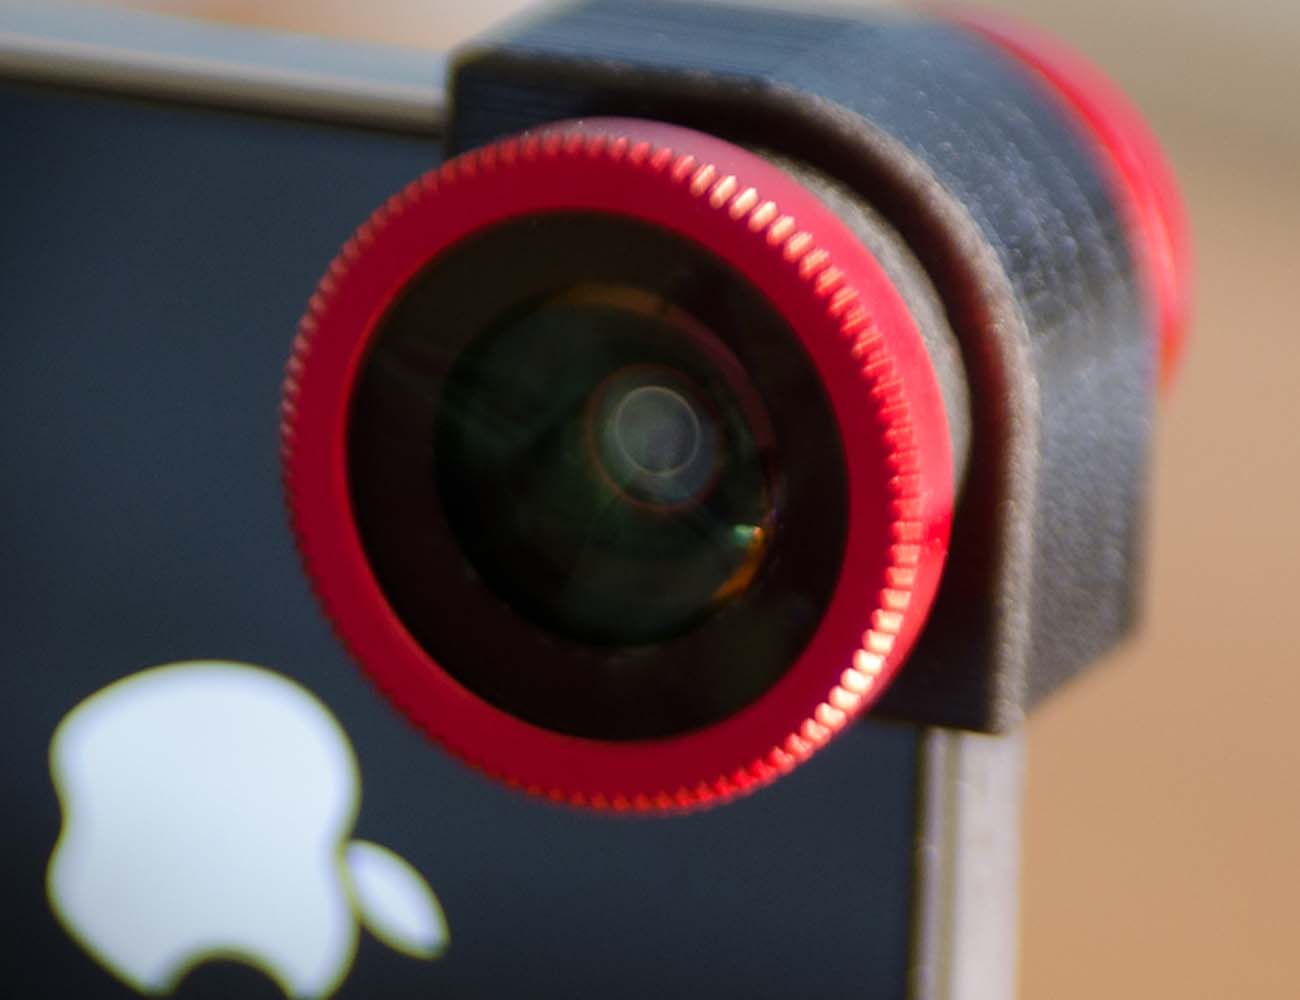 Olloclip+4-in-1+Lens+For+IPad+Air%2FMini